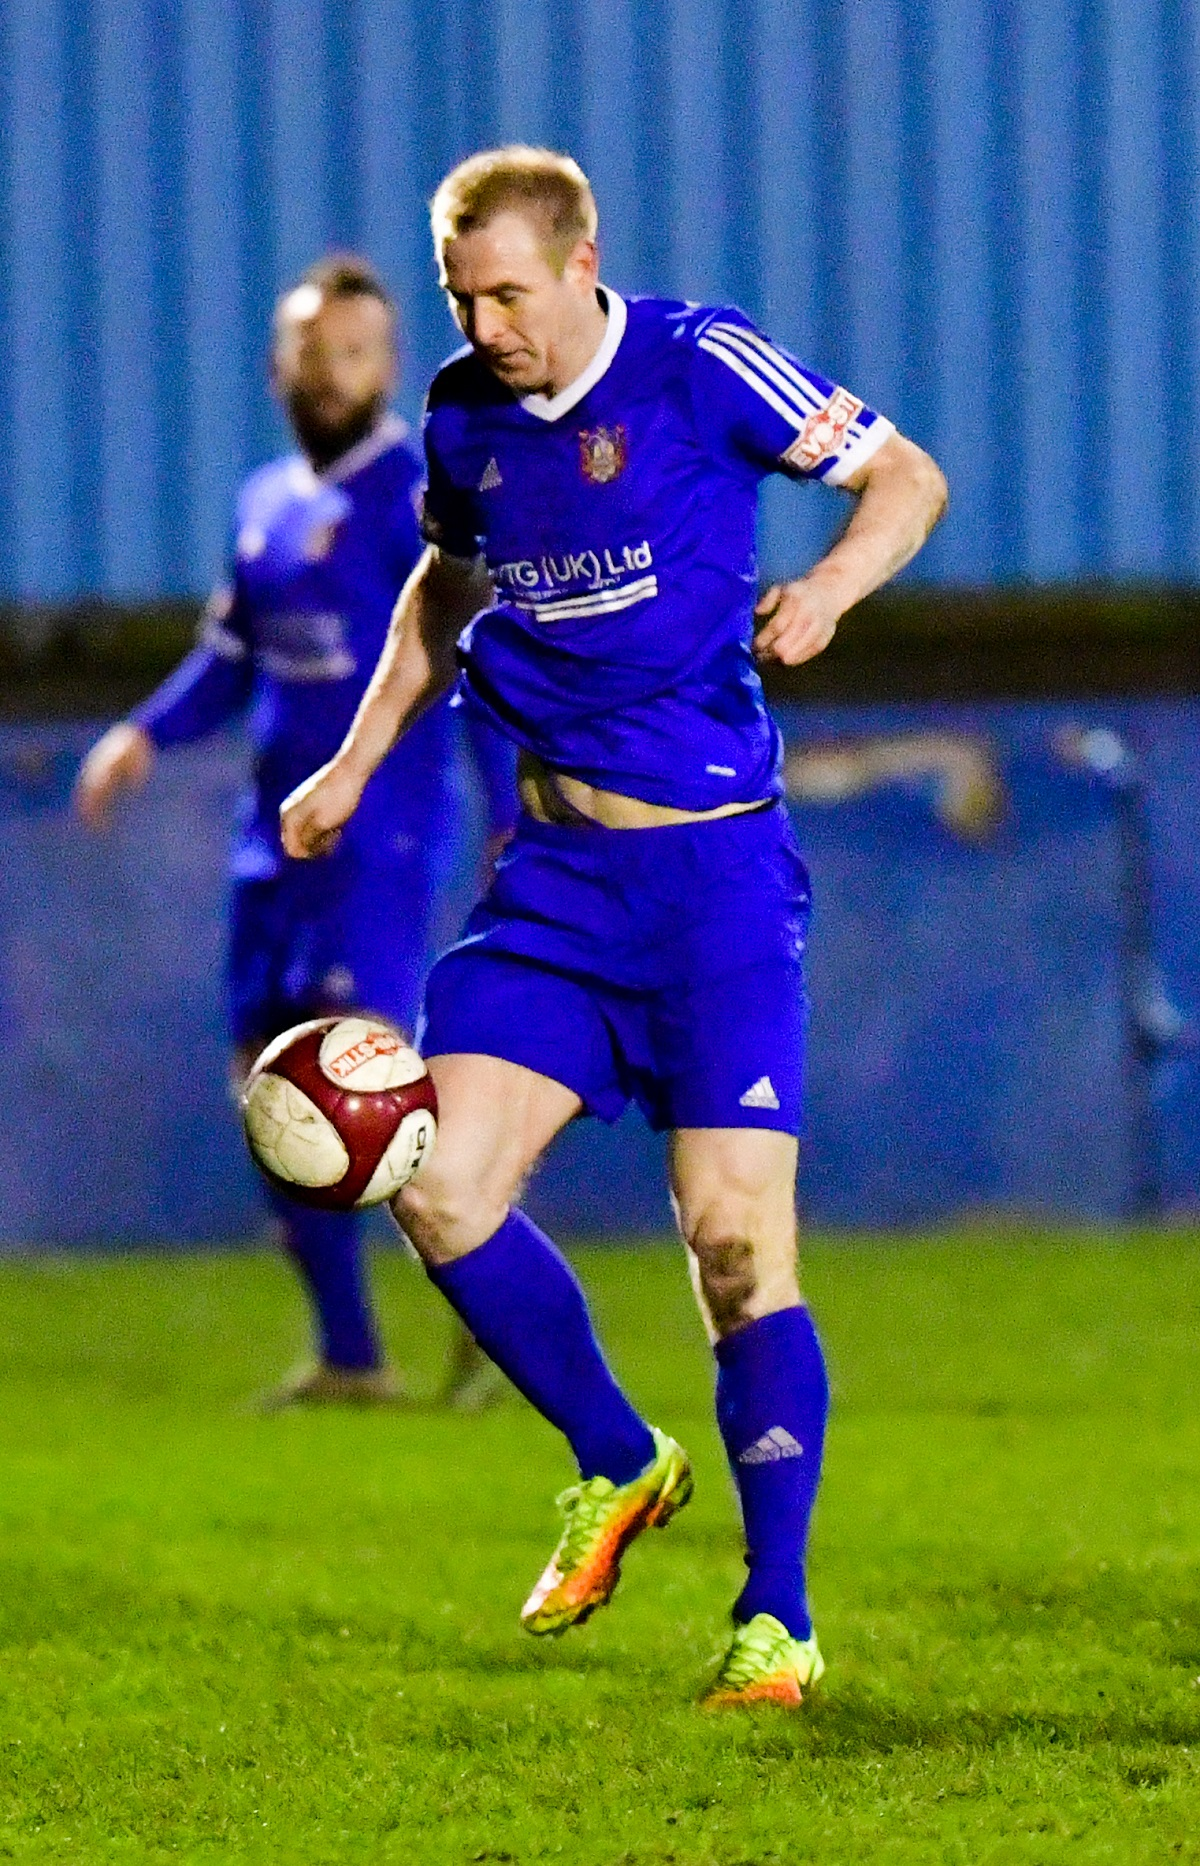 James Walshaw missed a penalty but still ended up scoring a hat-trick for Farsley Celtic last Saturday